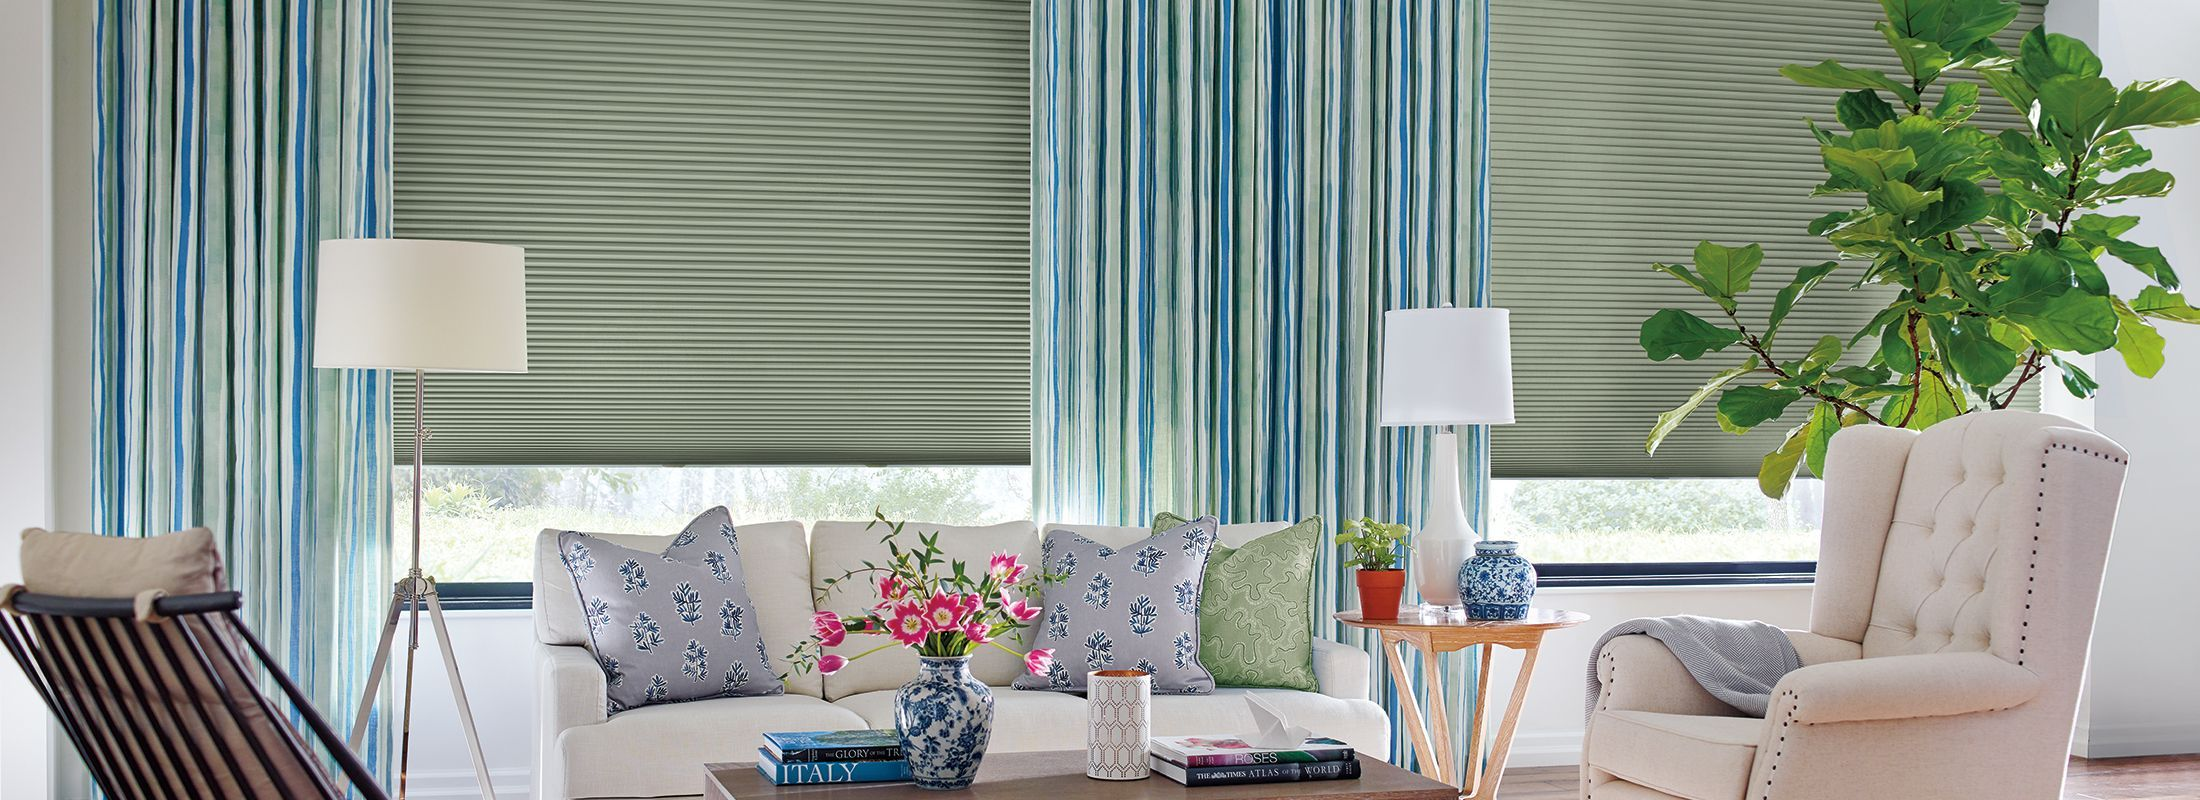 Design Studio Side Panels Fabric in Garden Stripe Green/Blue